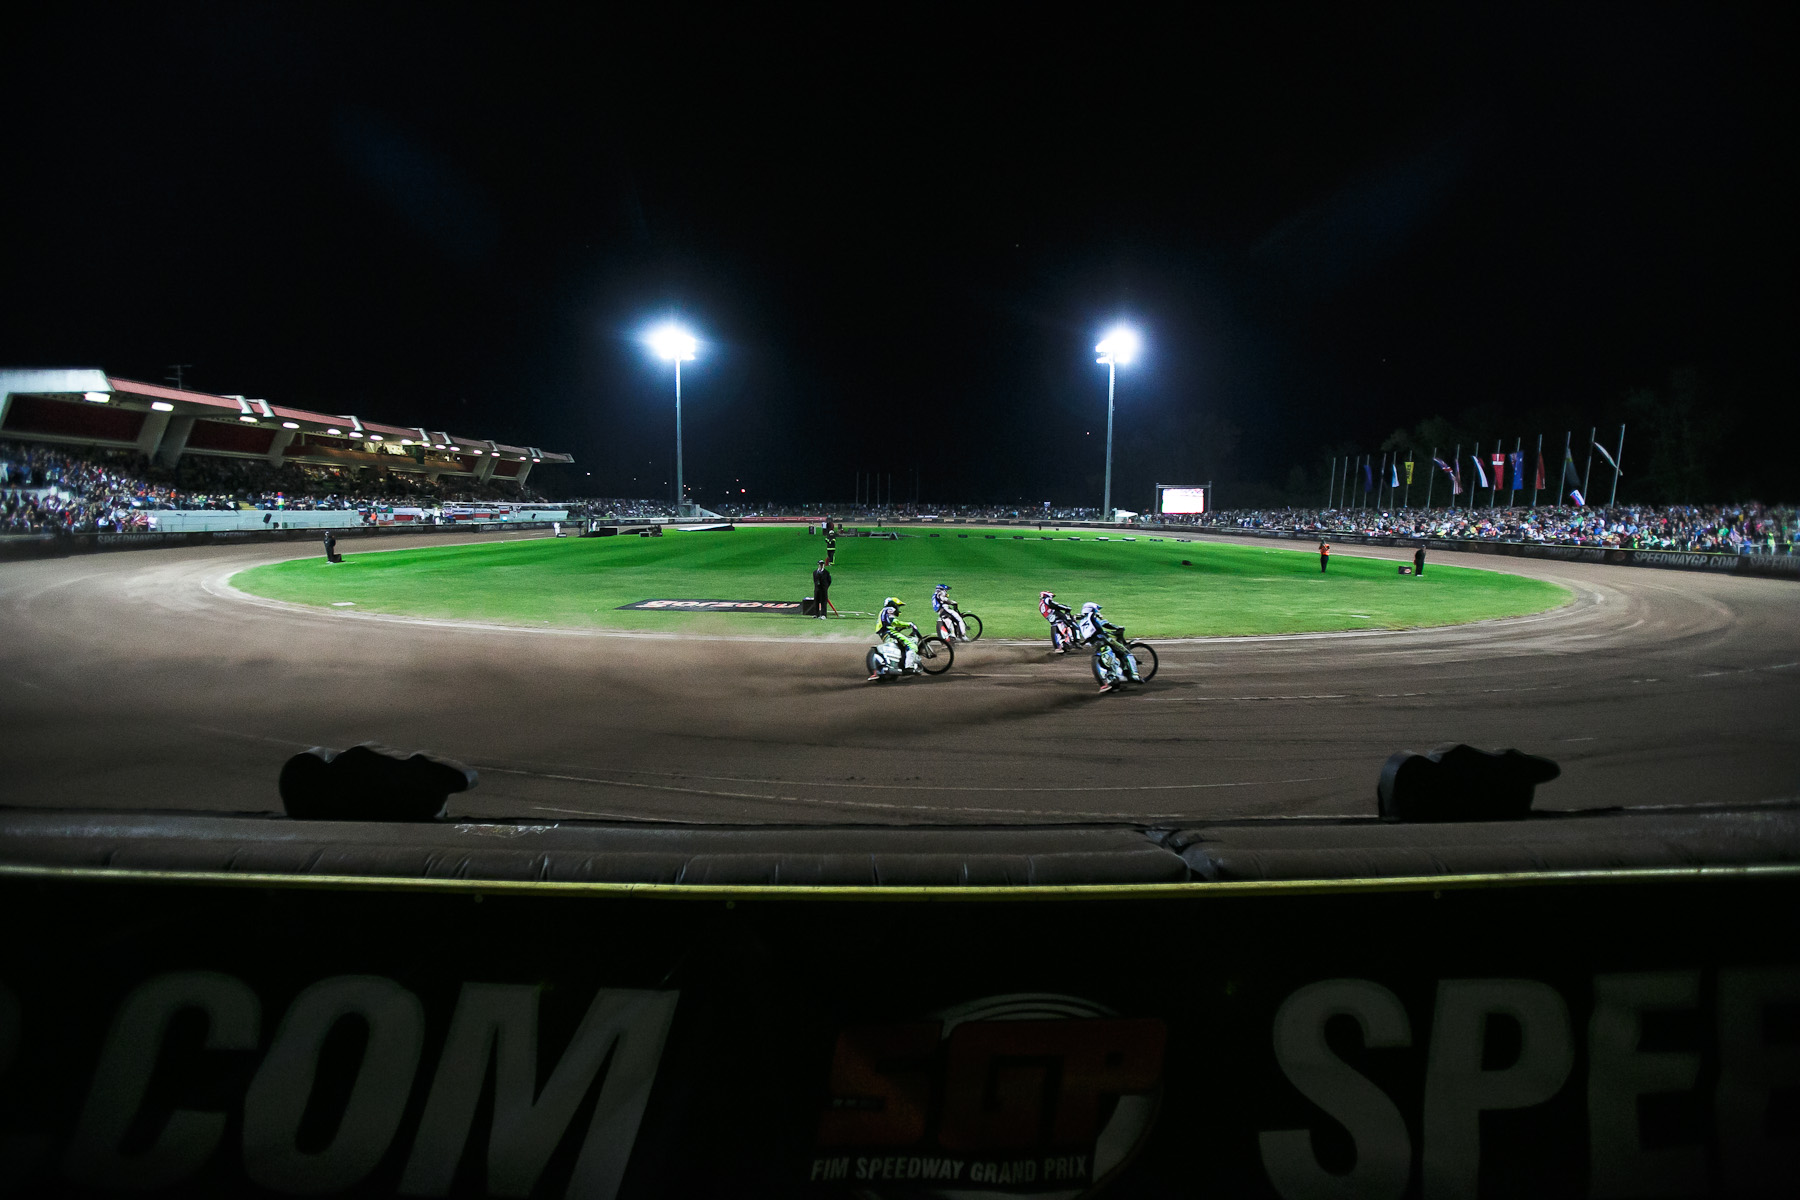 Greg Hancock of USA, Maciej Janowski of Poland, Troy Batchelor of Australia and Chris Holder of Australia compete in the Mitas Slovenian FIM Speedway Grand Prix at Matija Gubec Stadium in Krsko, Slovenia, Sep. 12, 2015.